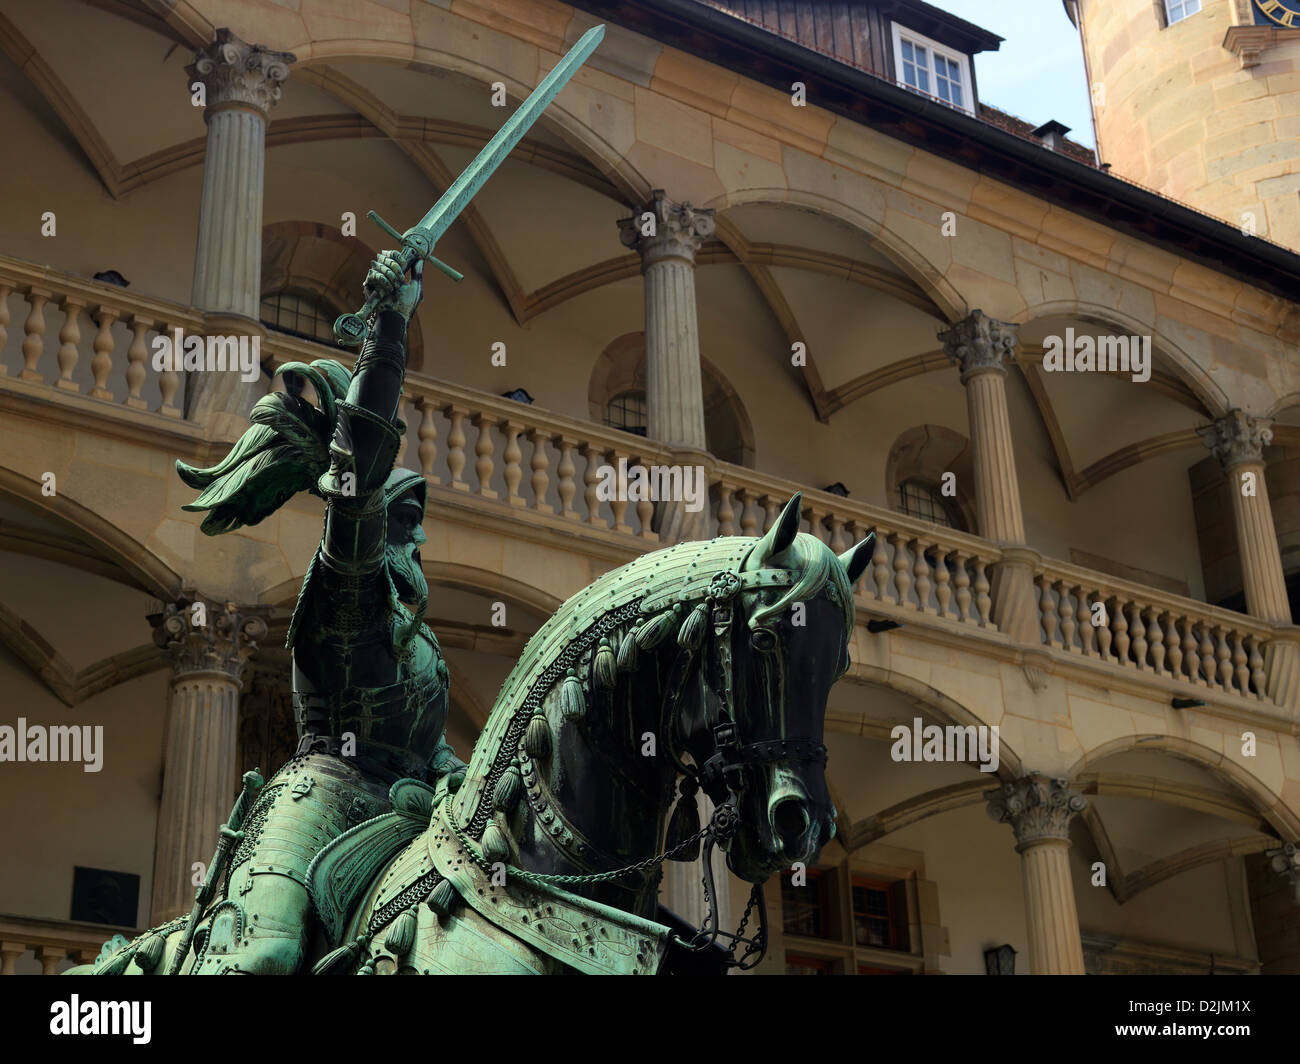 Equestrian statue of Count Eberhard in the inner courtyard of the Old Palace in Stuttgart, Germany - Stock Image